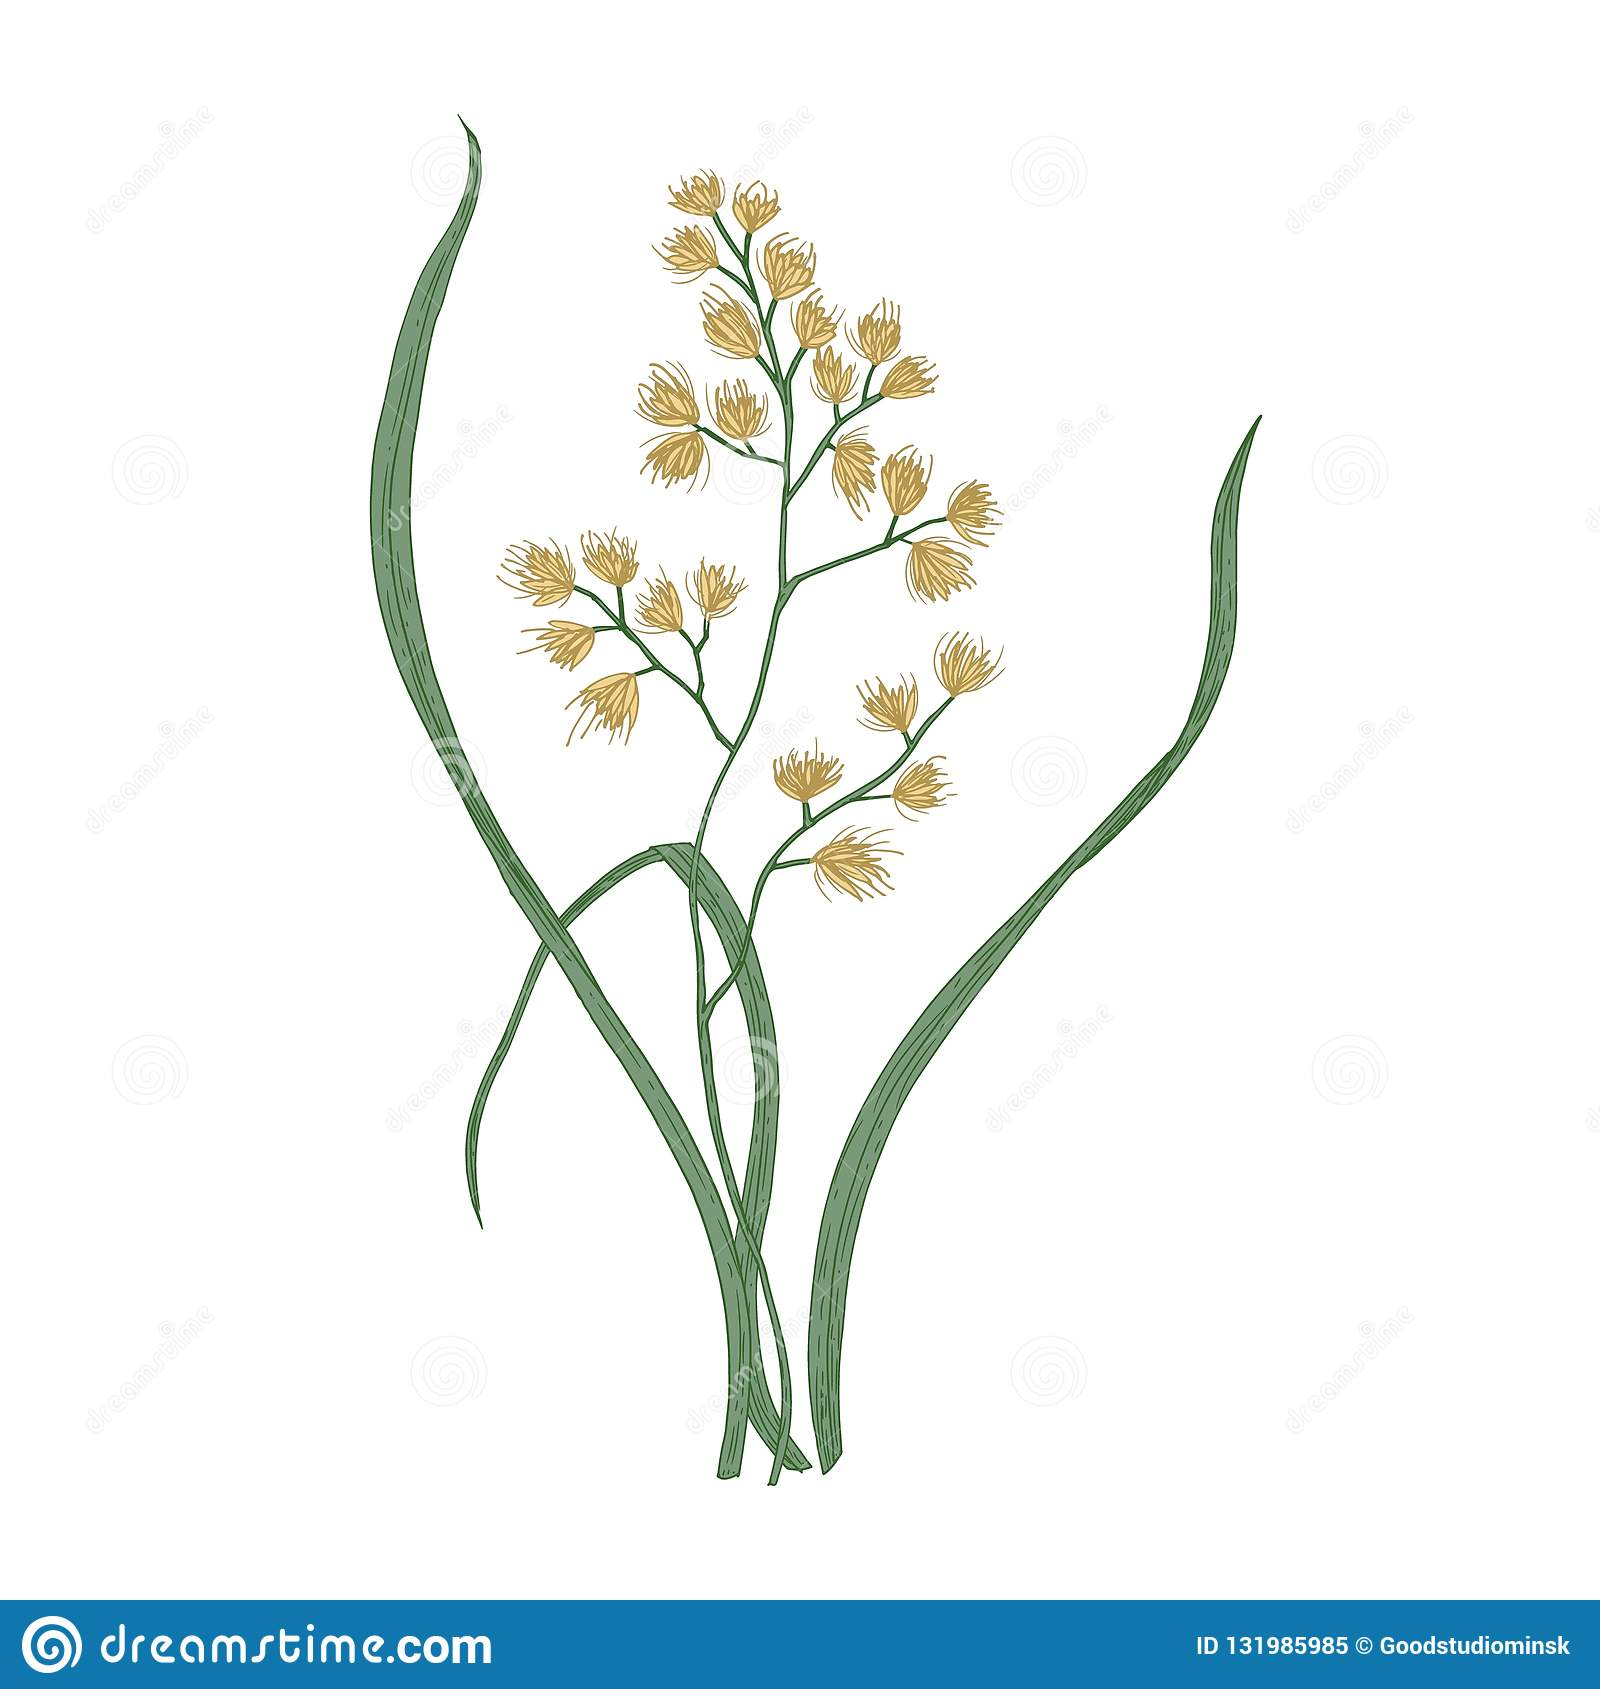 Cock`s-foot or cat grass isolated on white background. Botanical drawing of wild perennial flowering plant growing on